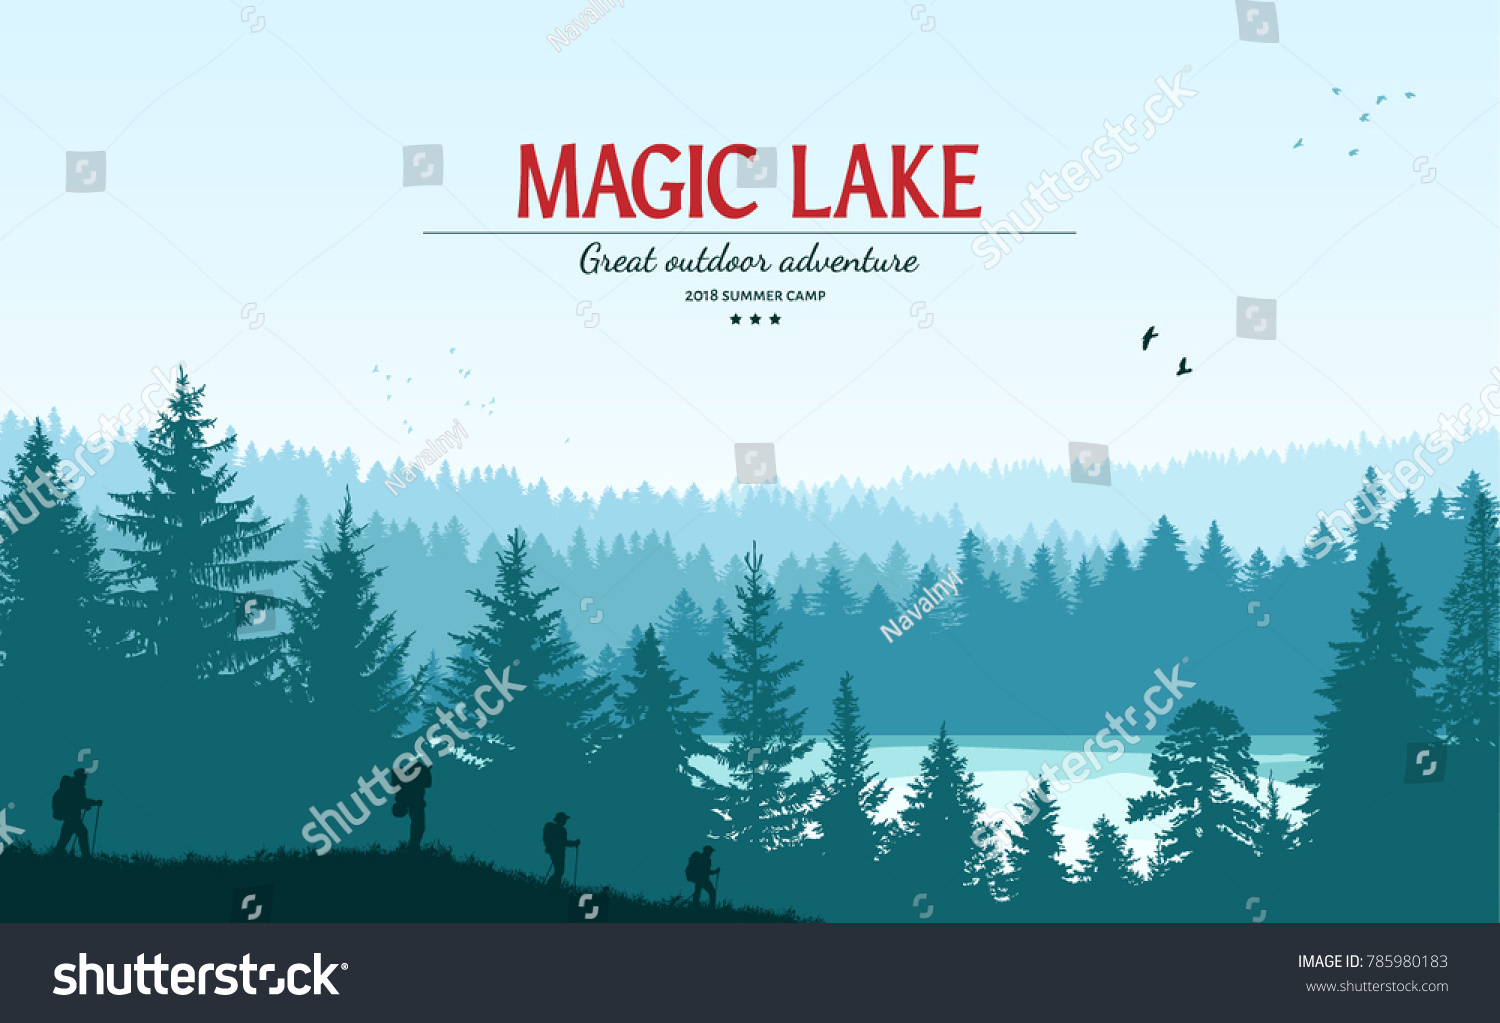 Abstract background. Forest wilderness landscape. People with backpacks silhouettes. Template for your design works. Hand drawn vector illustration. #785980183